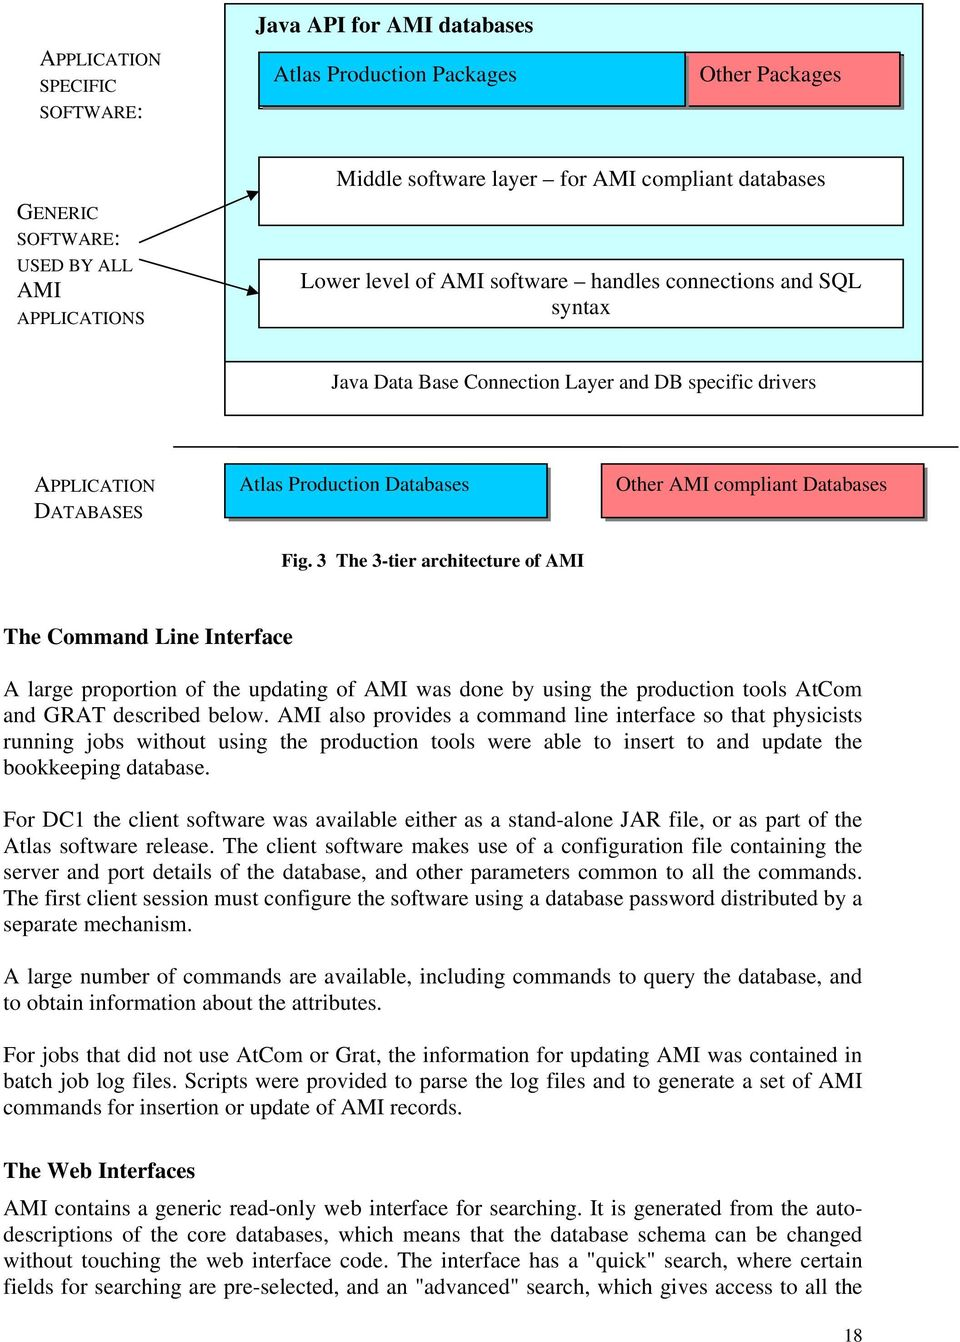 Fig. 3 The 3-tier architecture of AMI The Command Line Interface A large proportion of the updating of AMI was done by using the production tools AtCom and GRAT described below.